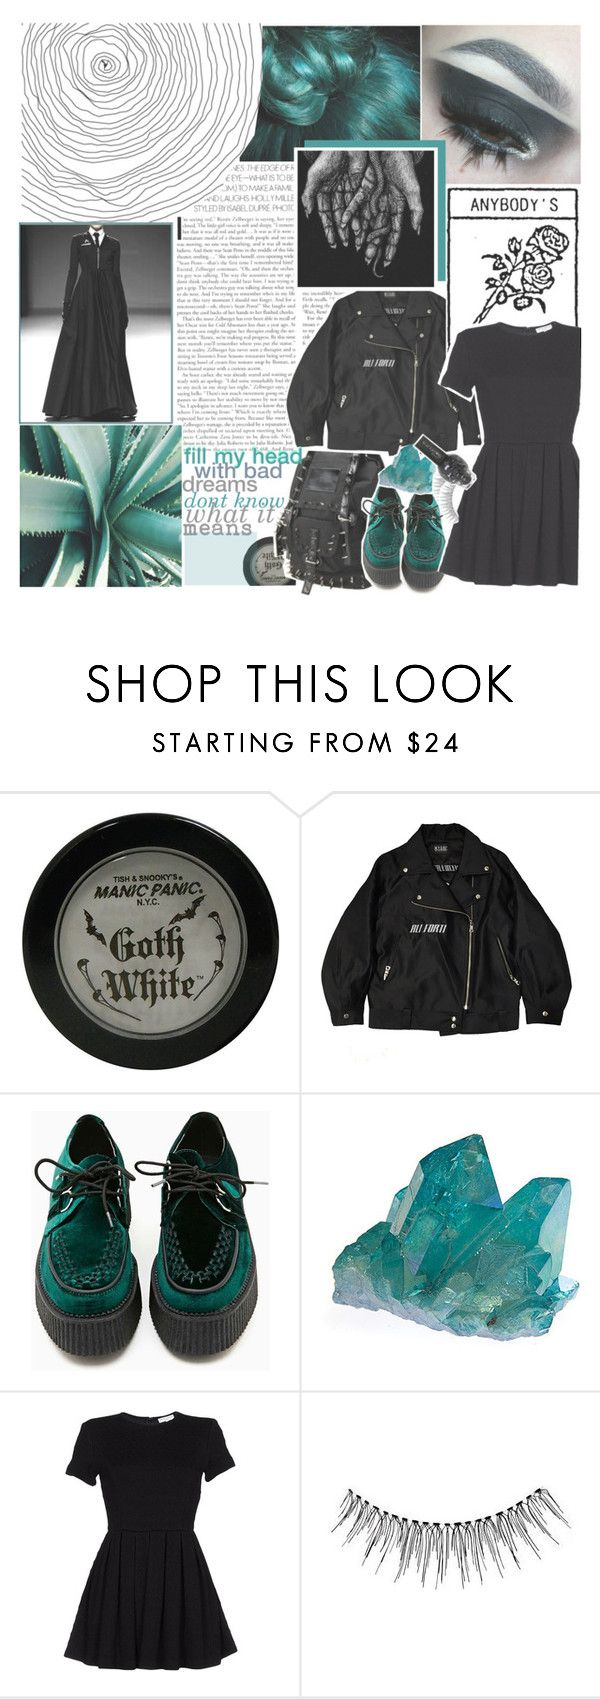 """☆✲ the waters in my lungs its dripping through the seams"" by dieliner ❤ liked on Polyvore featuring Manic Panic NYC, M.Y.O.B., T.U.K. and Opening Ceremony"